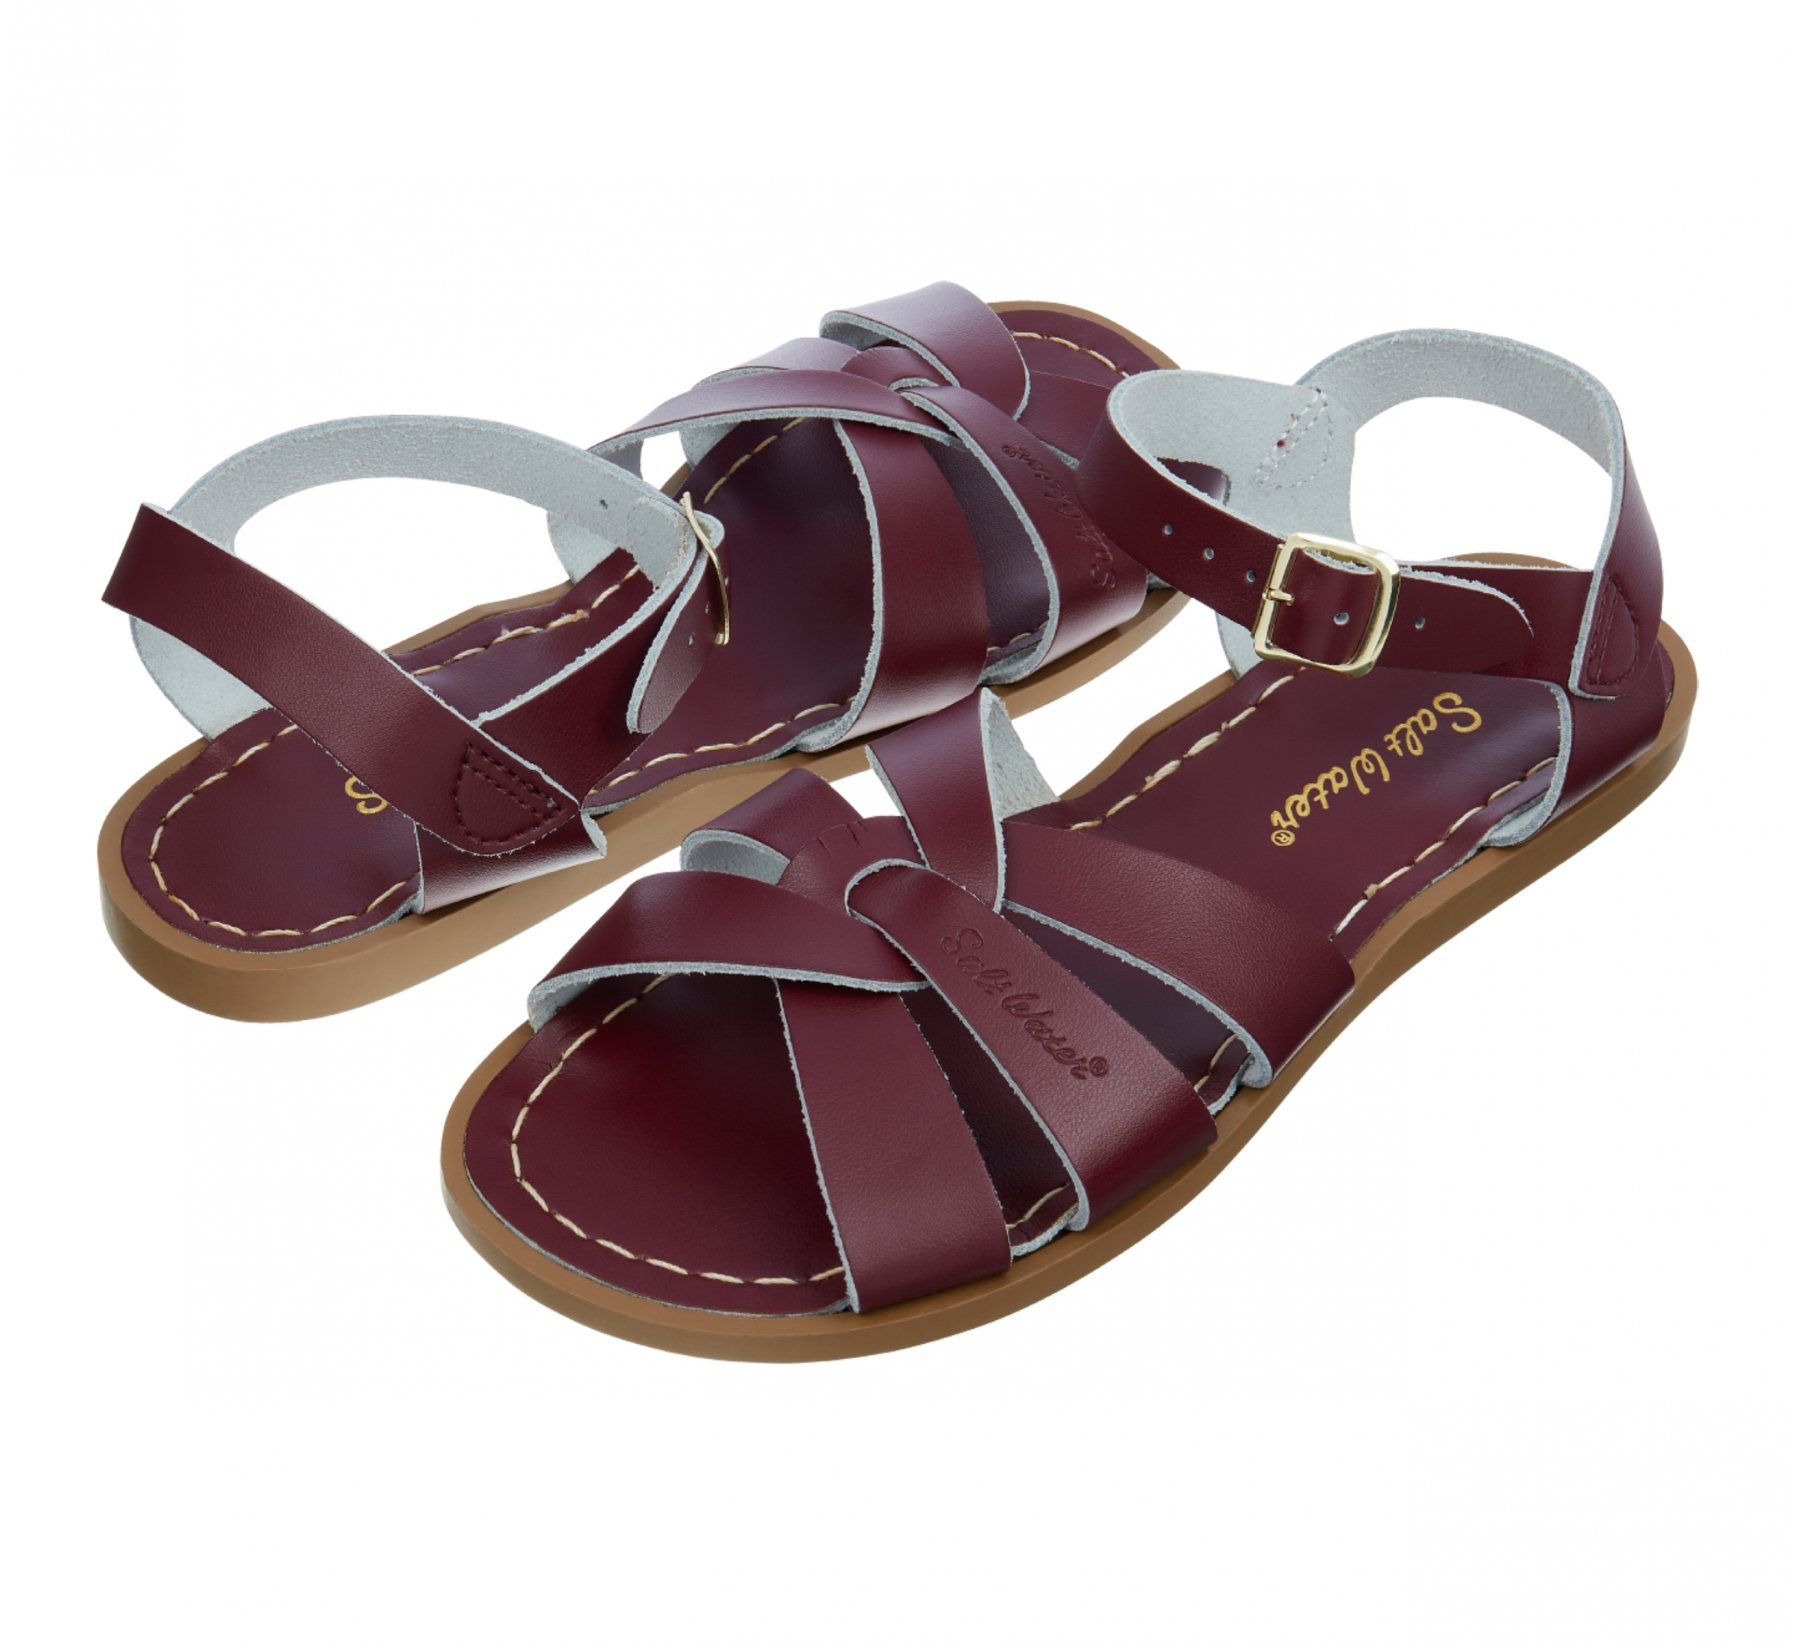 Original Wain Klaret - Salt Water Sandals